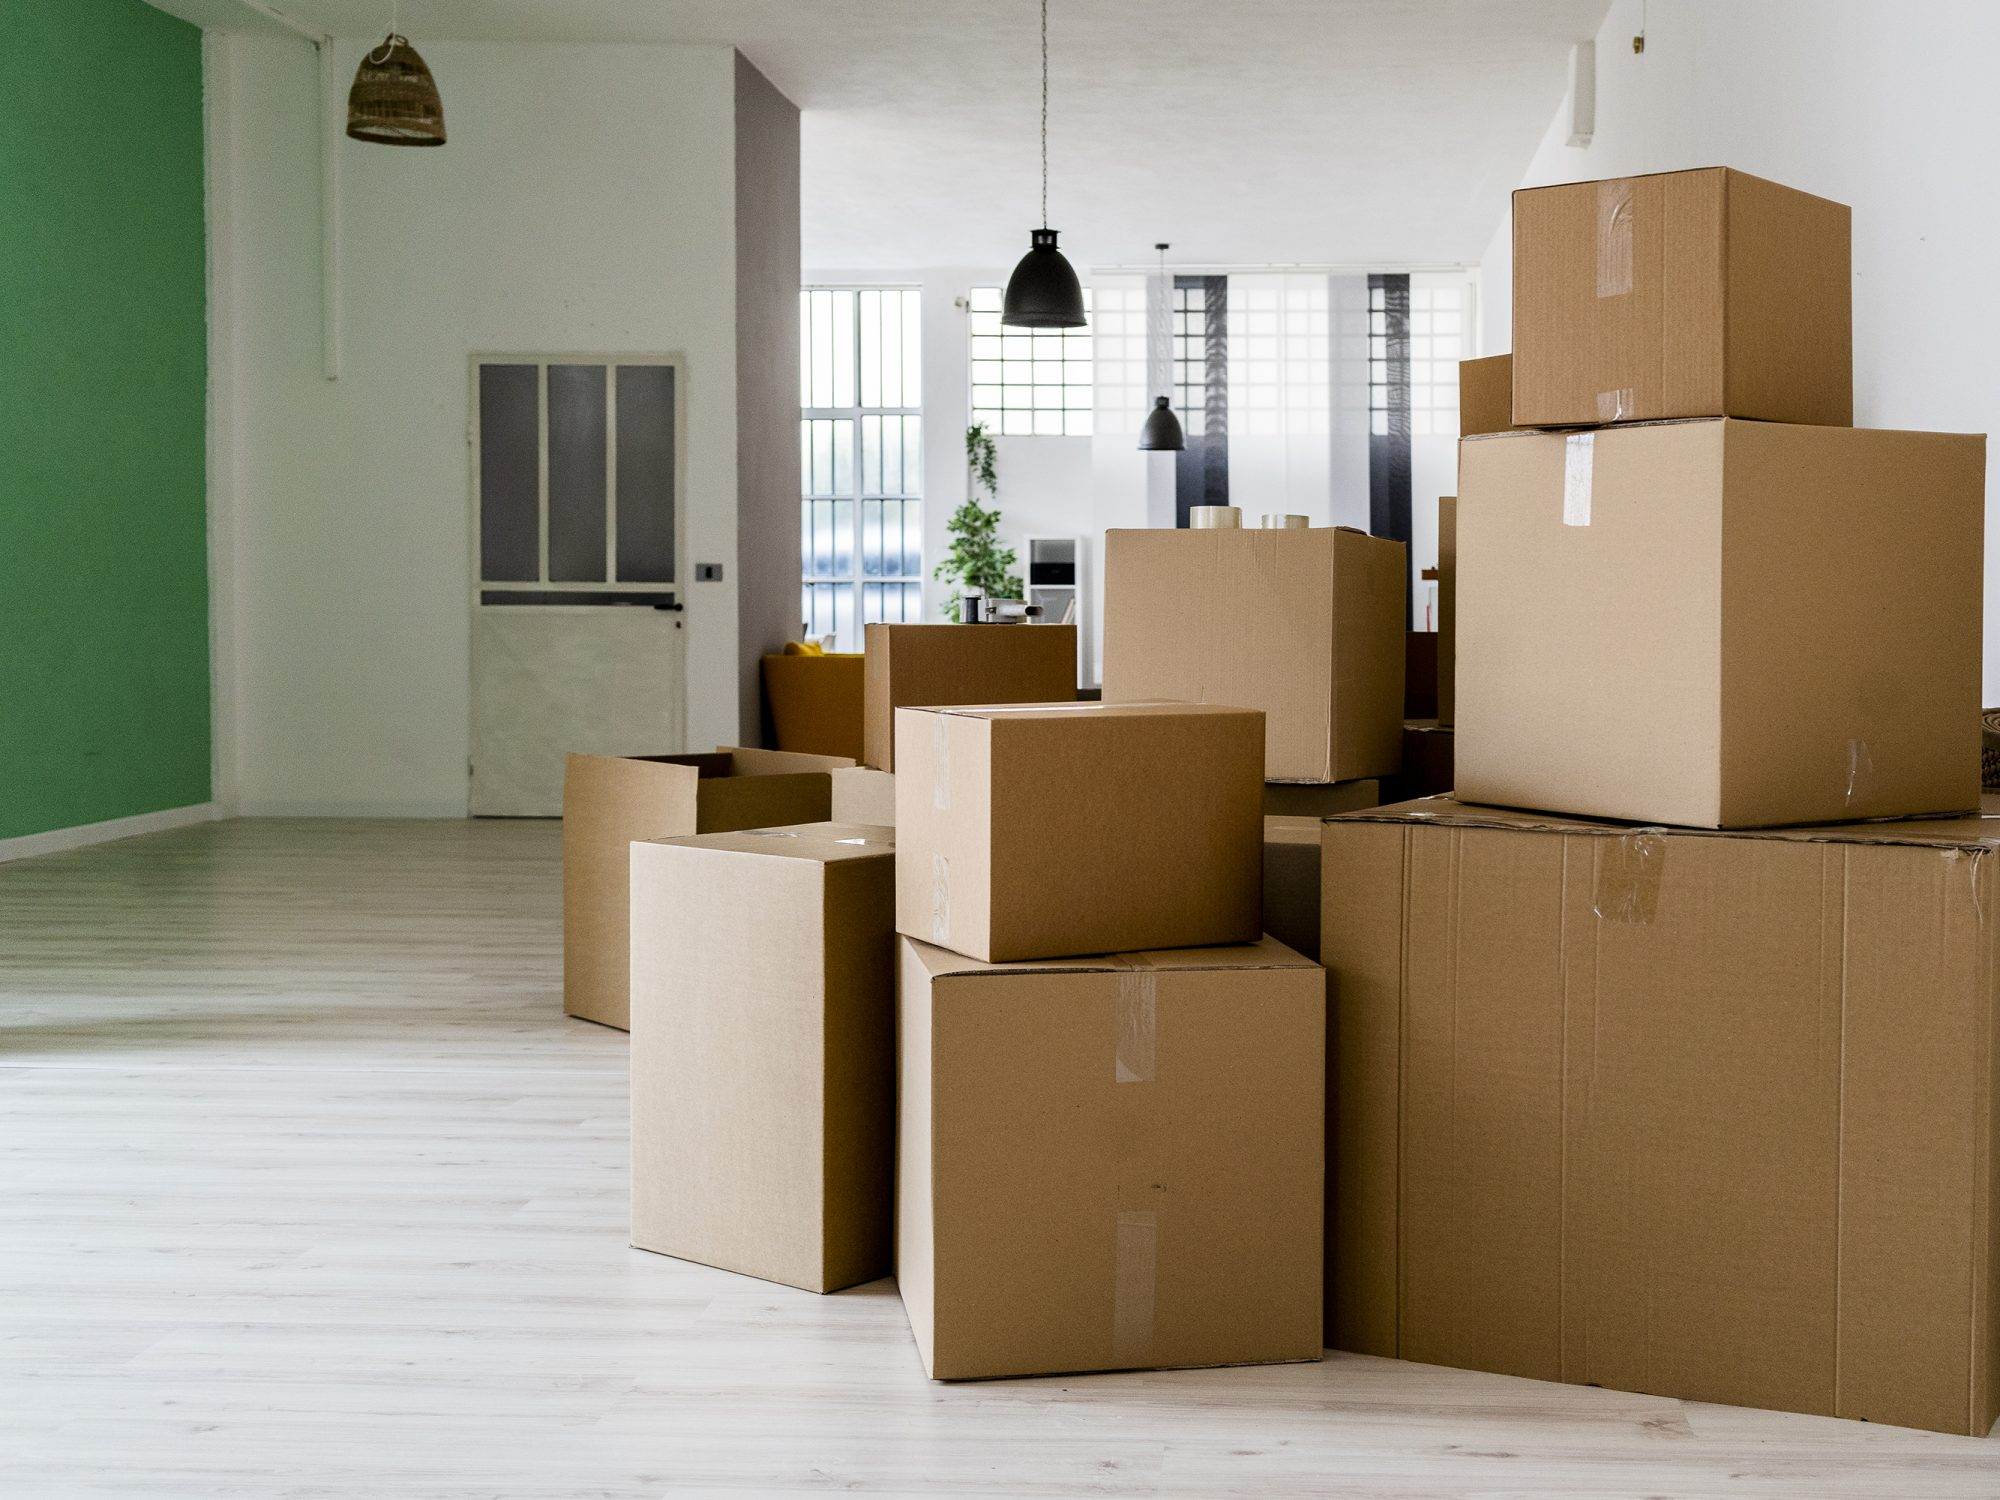 Carboard boxes in living room of new house